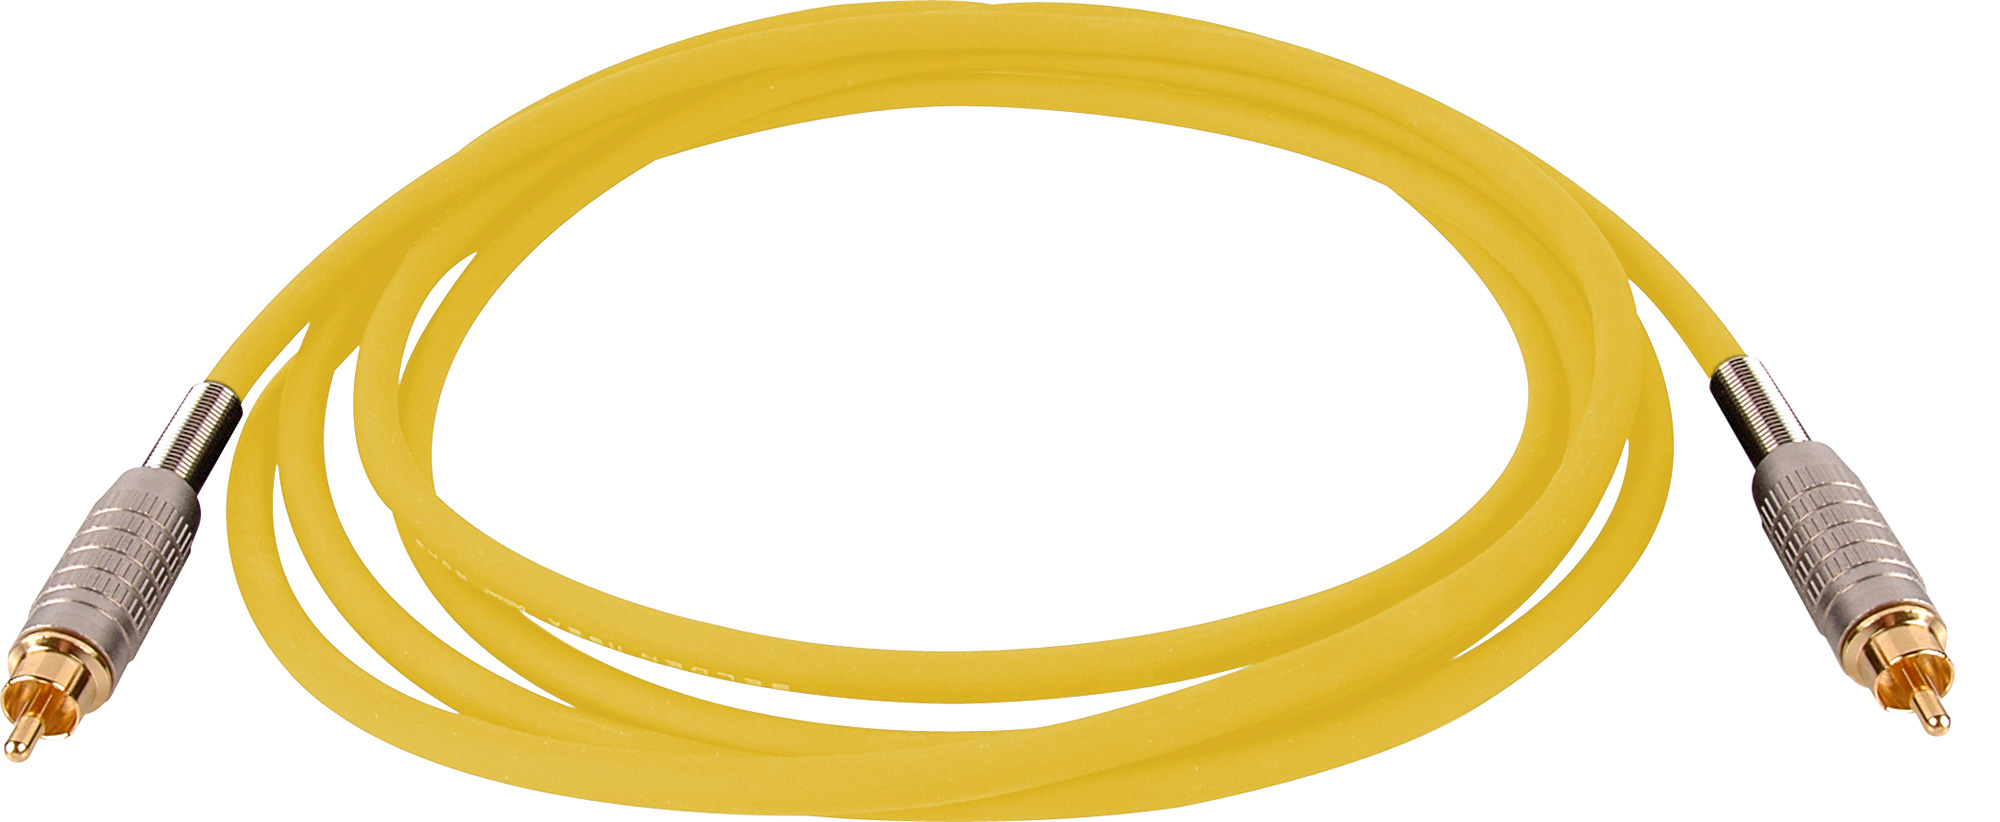 Belden Audio Cable Rca-Rca -10ft- Yellow BSC10RRYW